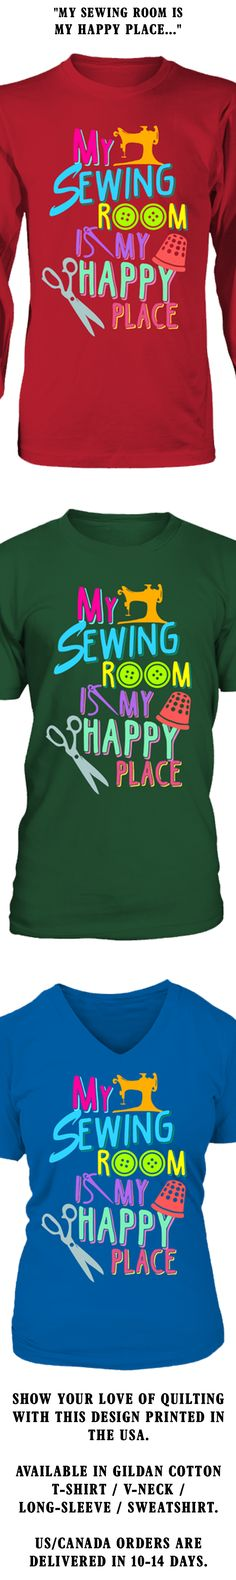 My Sewing Room Is My Happy Place...  Show your love of Quilting with this design printed in the USA.  Available in Gildan Cotton T-Shirt / V-Neck / Long-Sleeve / Sweatshirt.   US/Canada orders are delivered in 10-14 days.